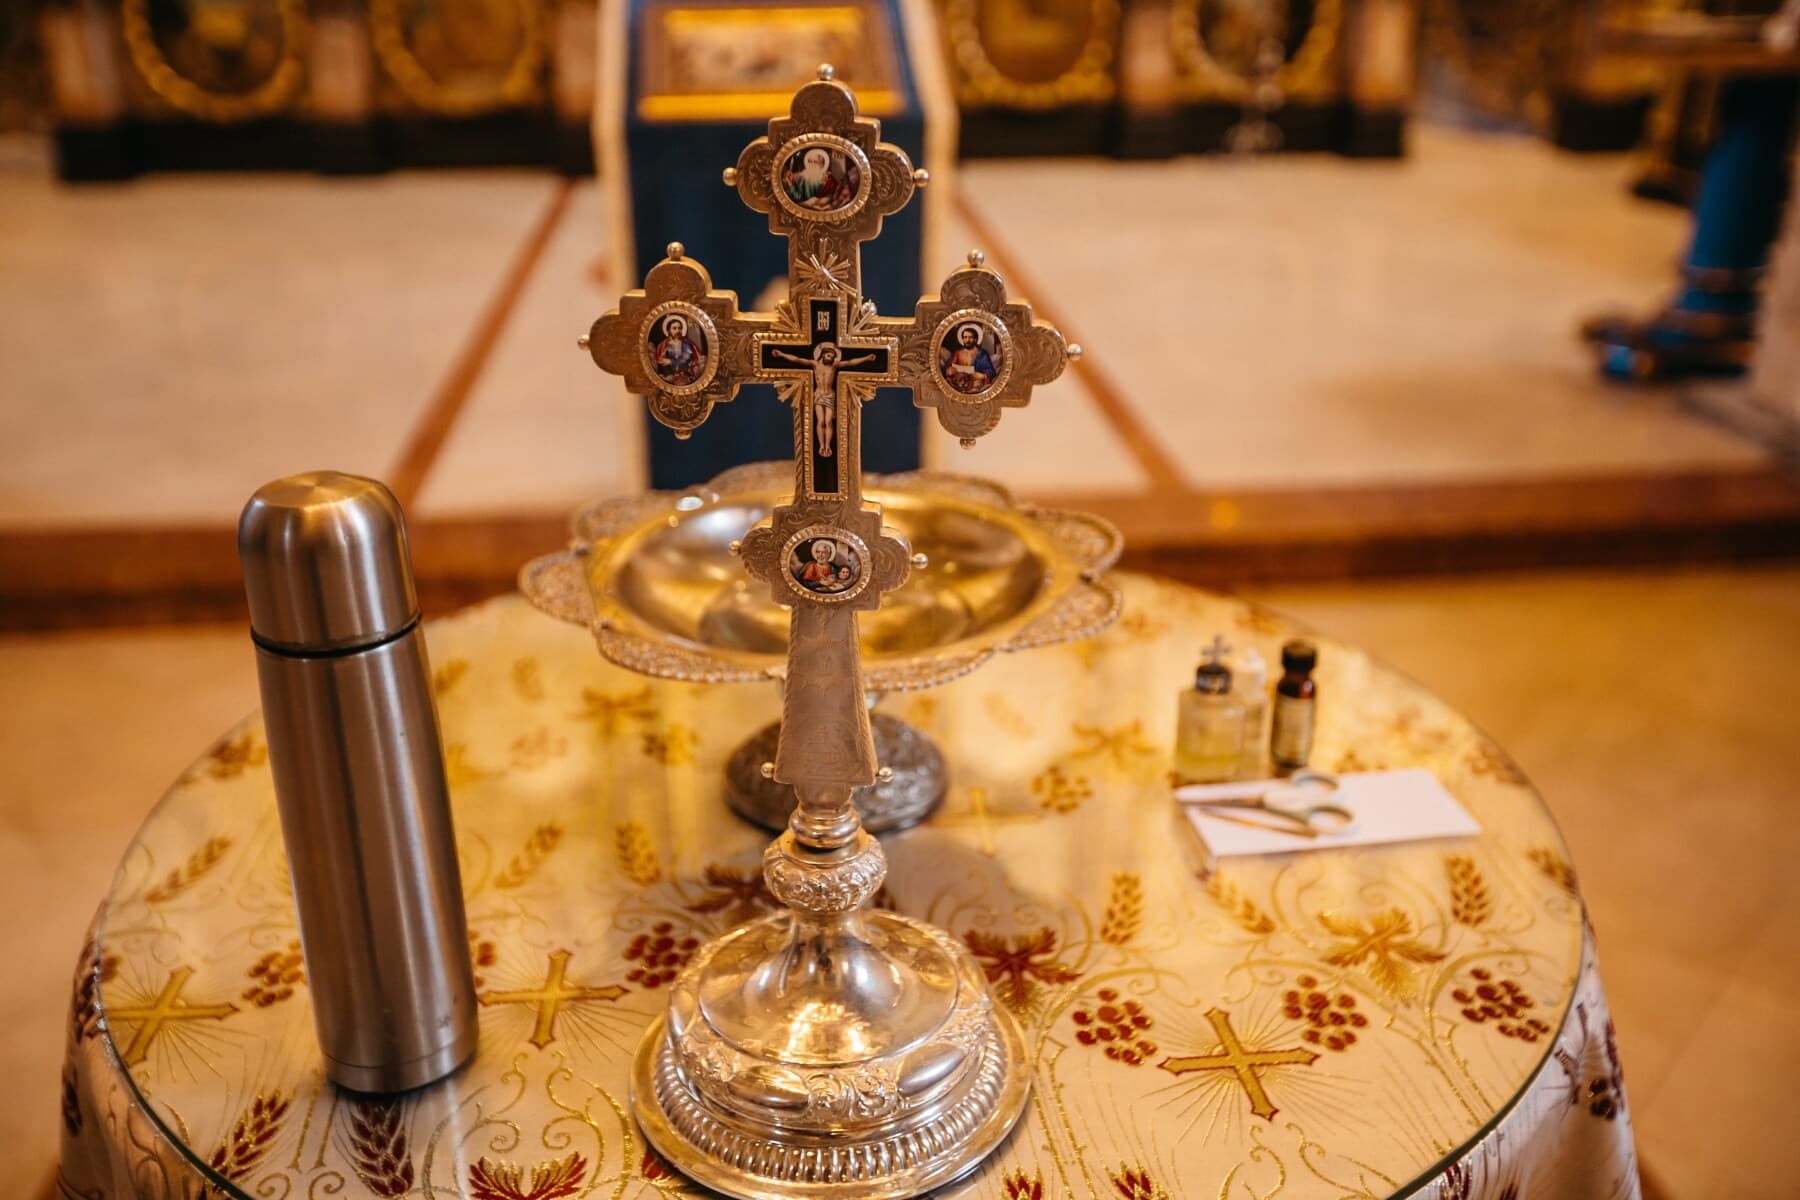 golden shine, cross, orthodox, icon, christianity, saint, Christ, indoors, table, still life